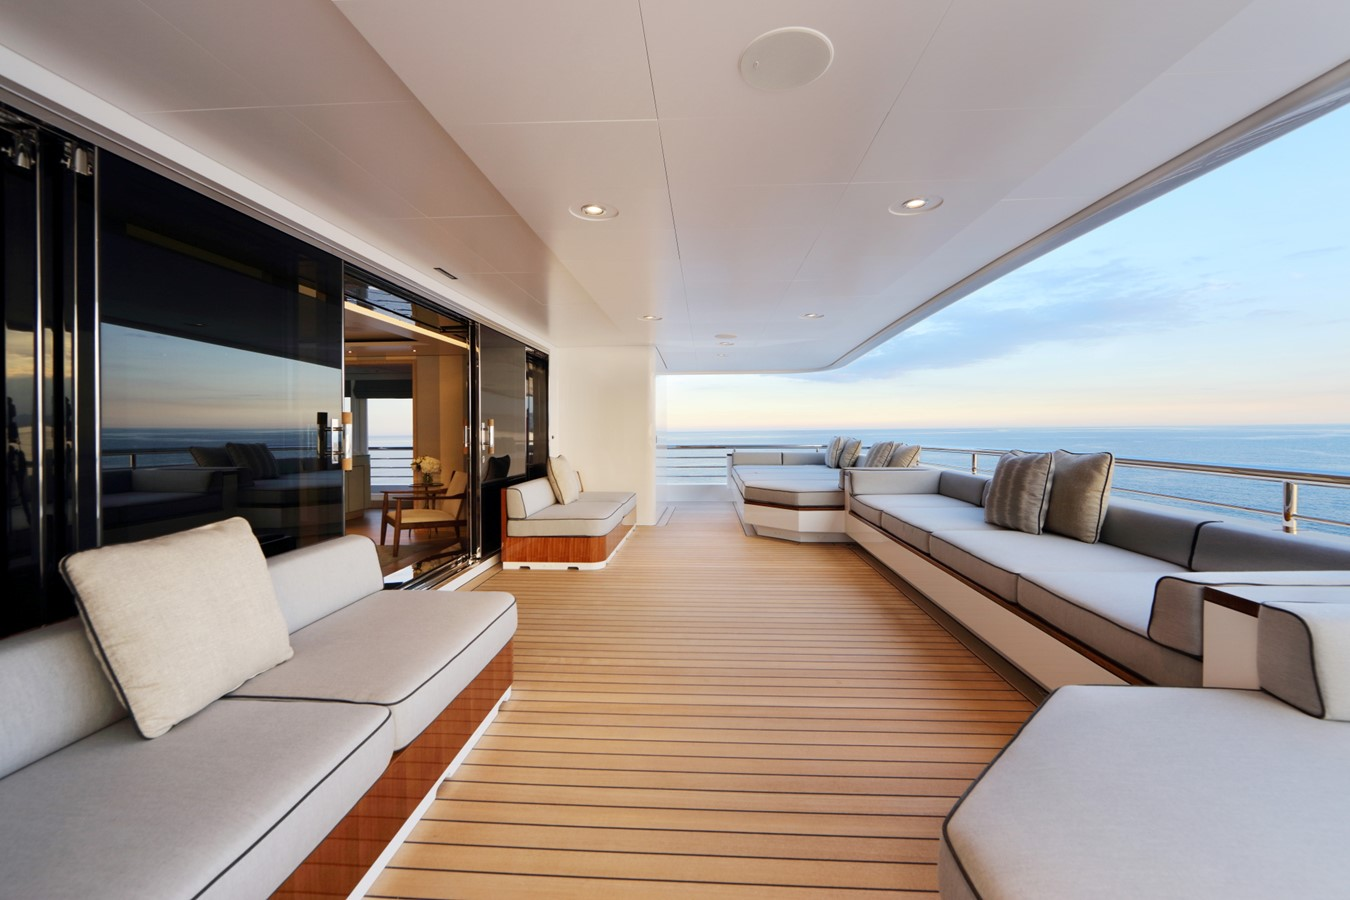 Bridge Deck VIP Private Deck  2018 ADMIRAL Long Range Motor Yacht Motor Yacht 2172553